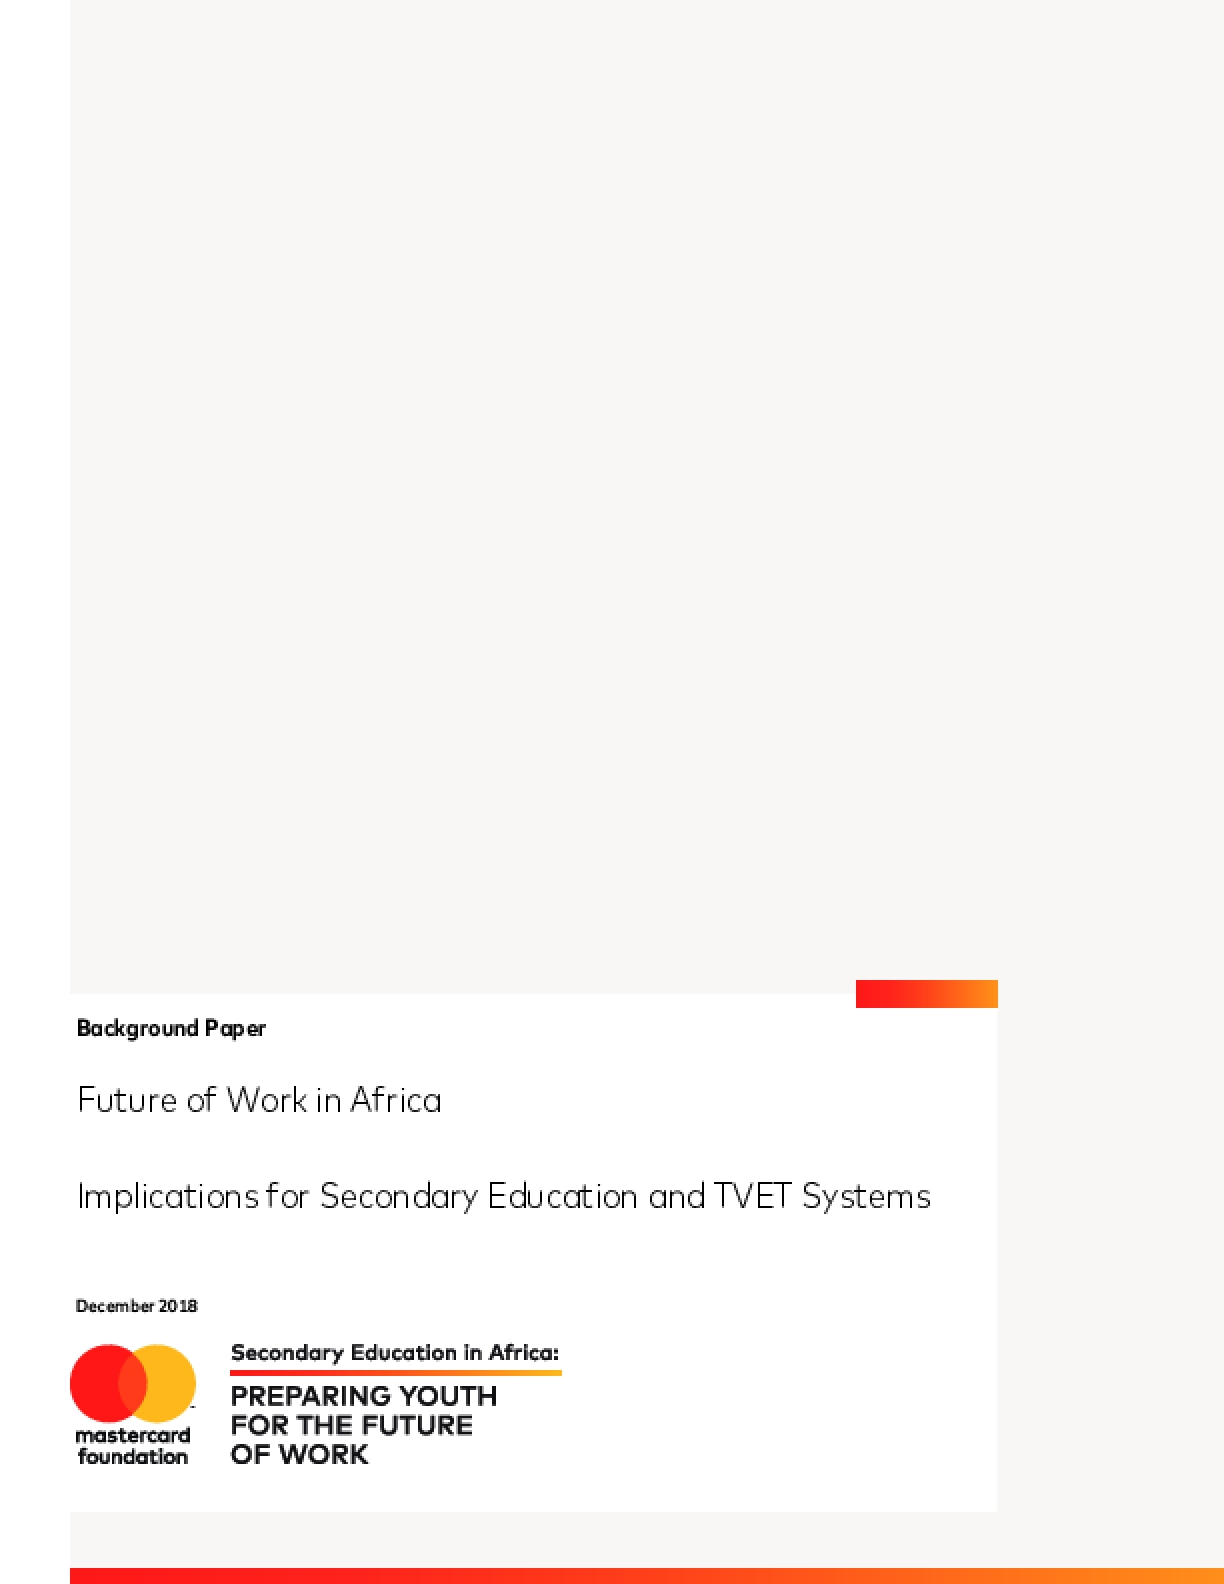 The Future of Work in Africa: Implications for Secondary Education and TVET Systems